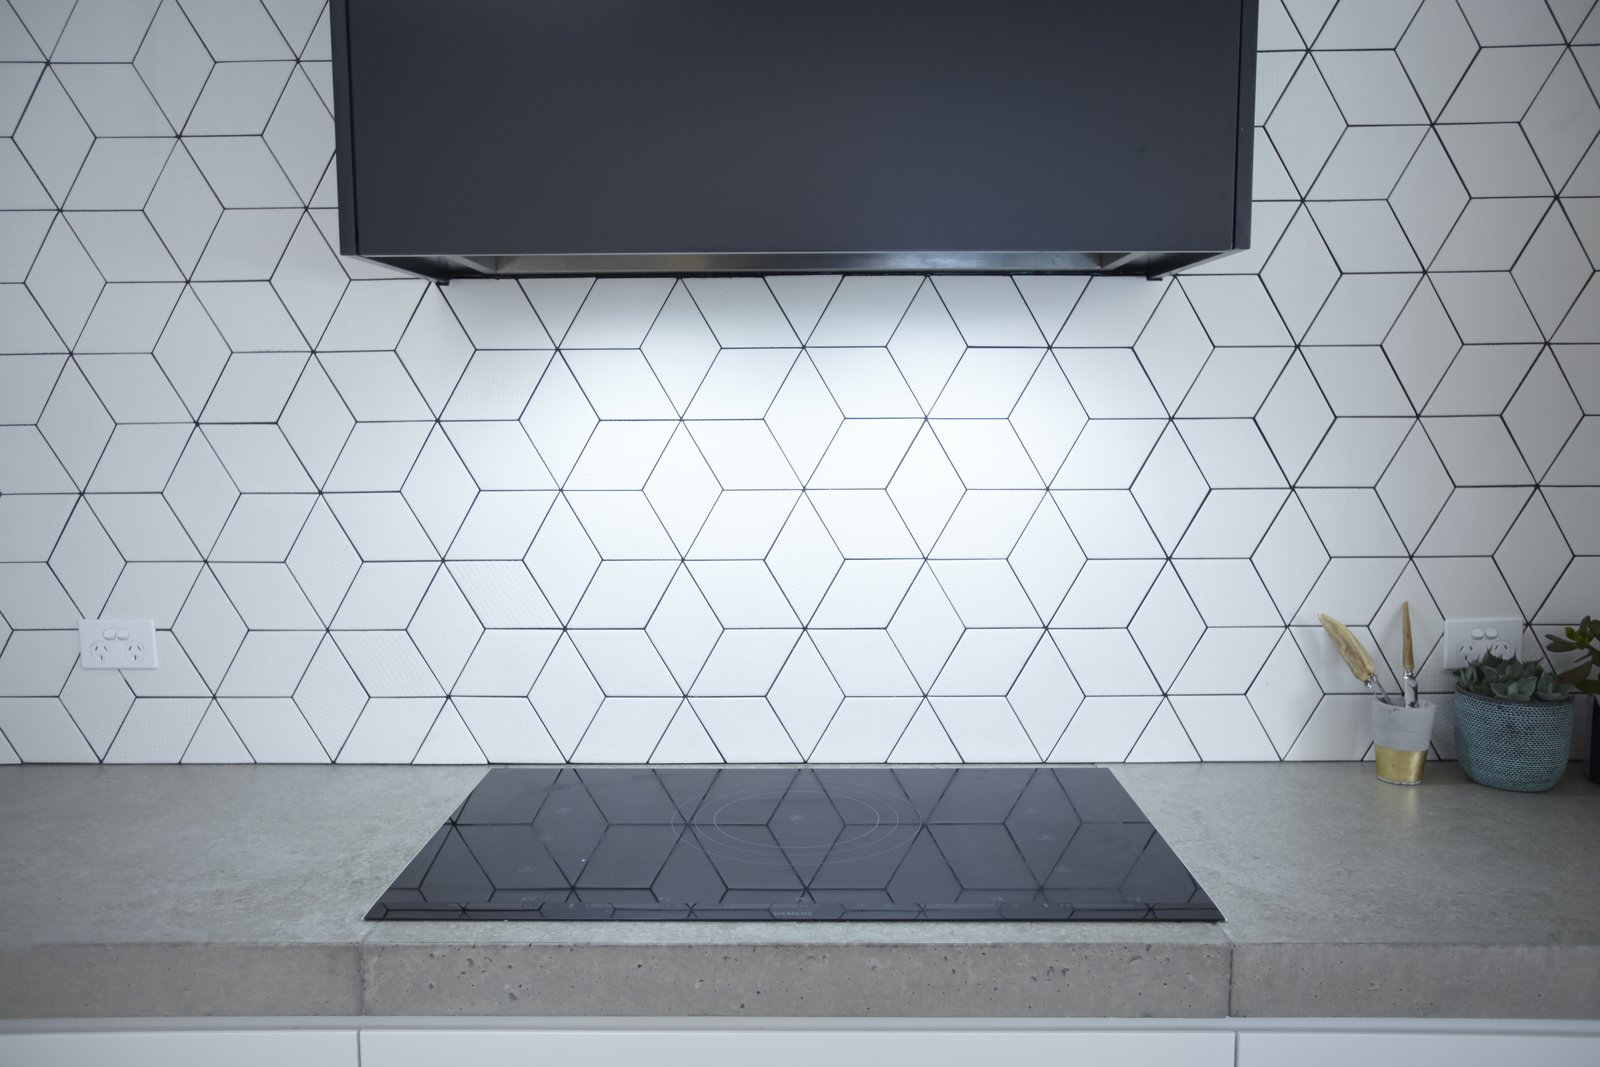 Kitchen, Range Hood, Ceramic Tile Backsplashe, Cooktops, and Concrete Counter You can use your new backsplash to add texture and visual flair to the space.    Photo 6 of 11 in 10 Design Tips for Kitchens, According to Expert Renovators